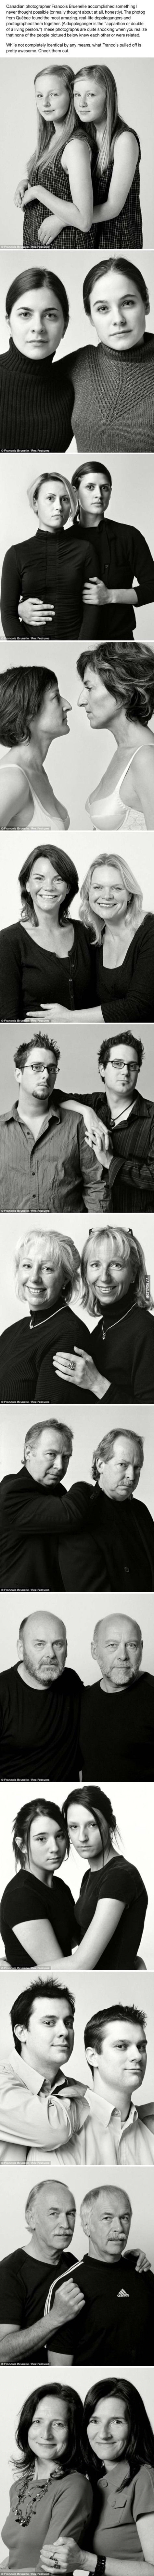 20140123th-portraits-of-twins-from-9gag-photos-by-canadian-photographer-francois-bruenelle